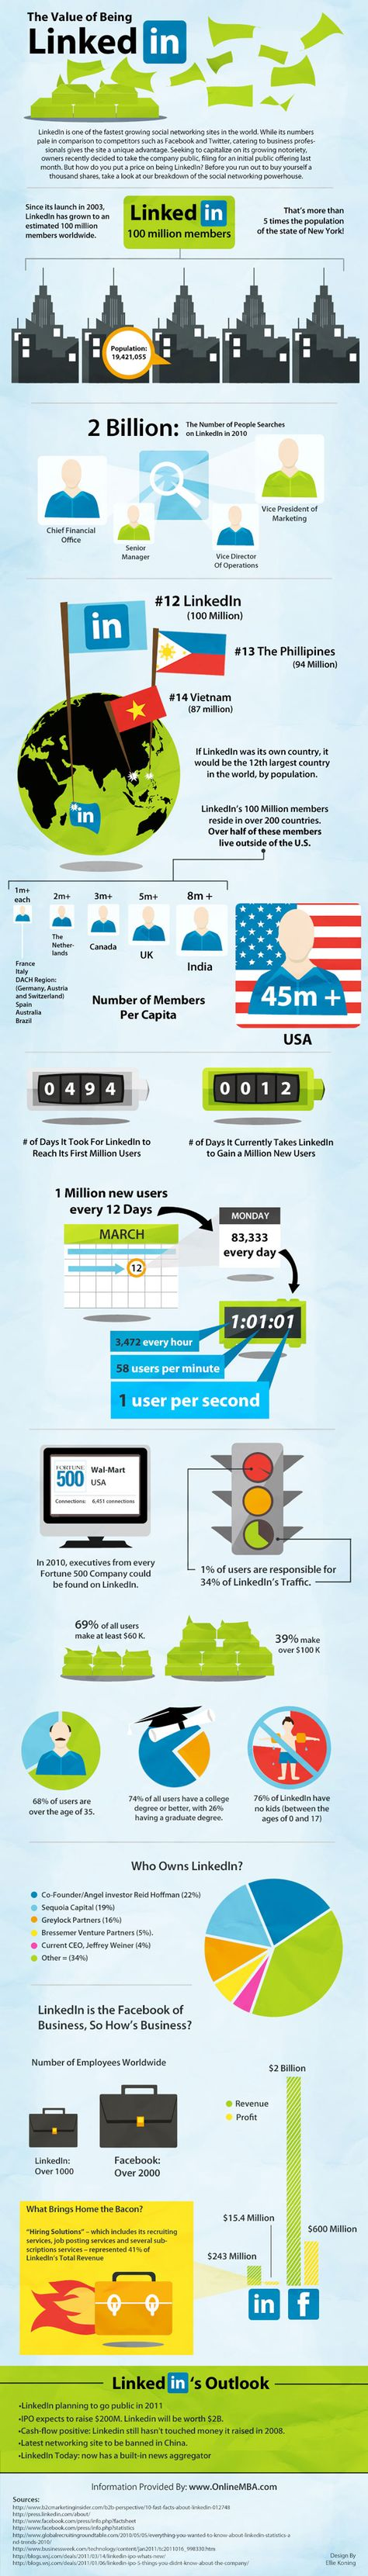 The Value Of Being LinkedIn - Infographic